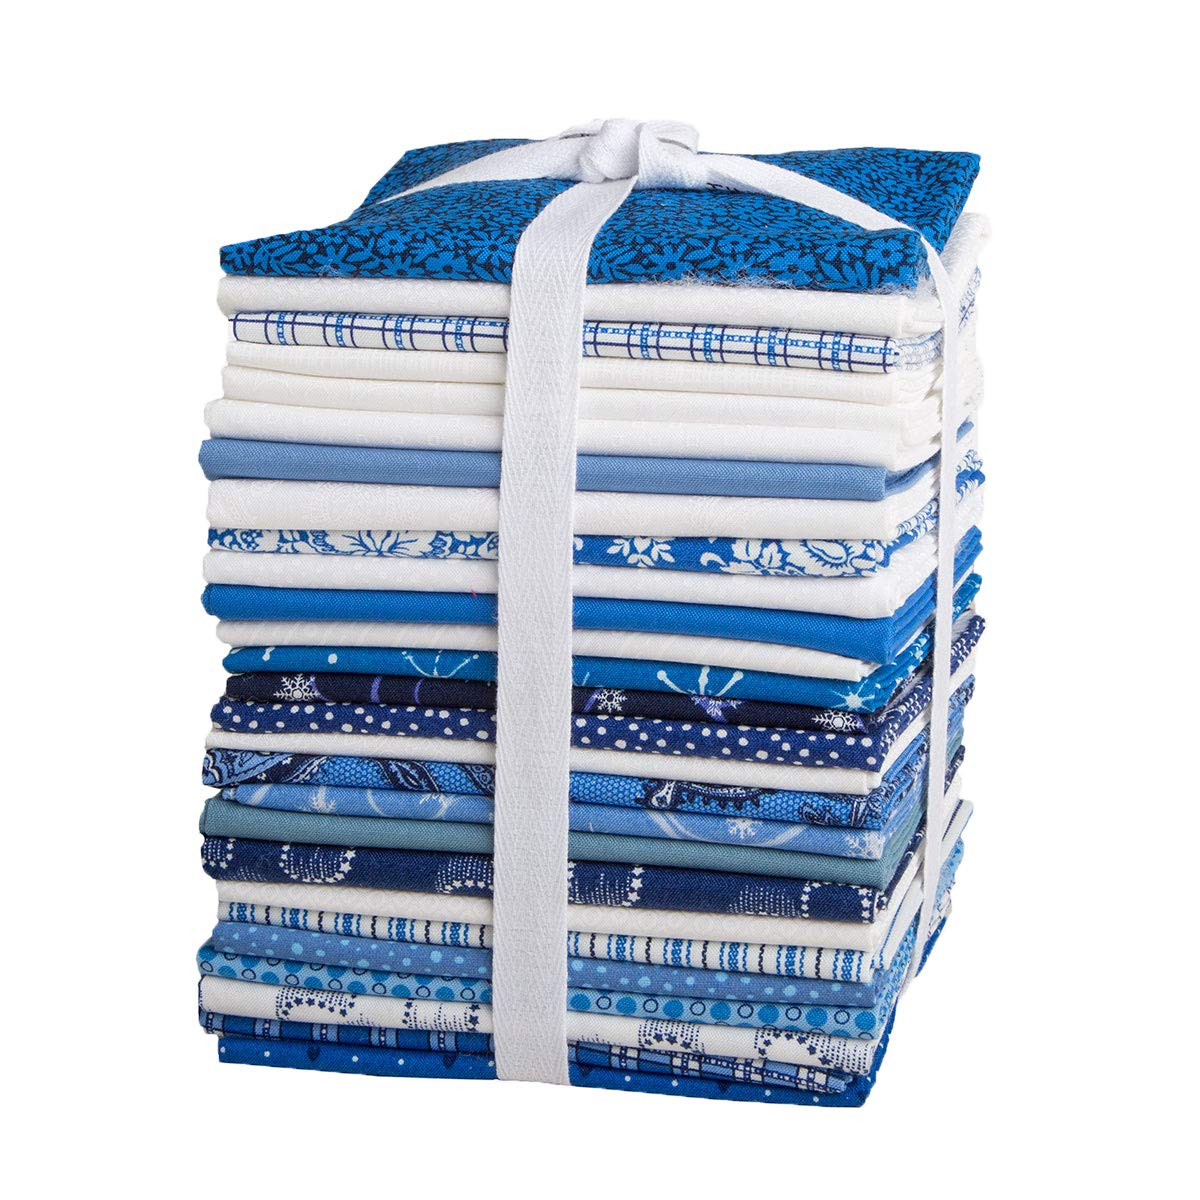 Connecting Threads Stashbuilder Precut Quilting Fabric Fat Quarter Bundle (Blue and White) by Connecting Threads (Image #1)